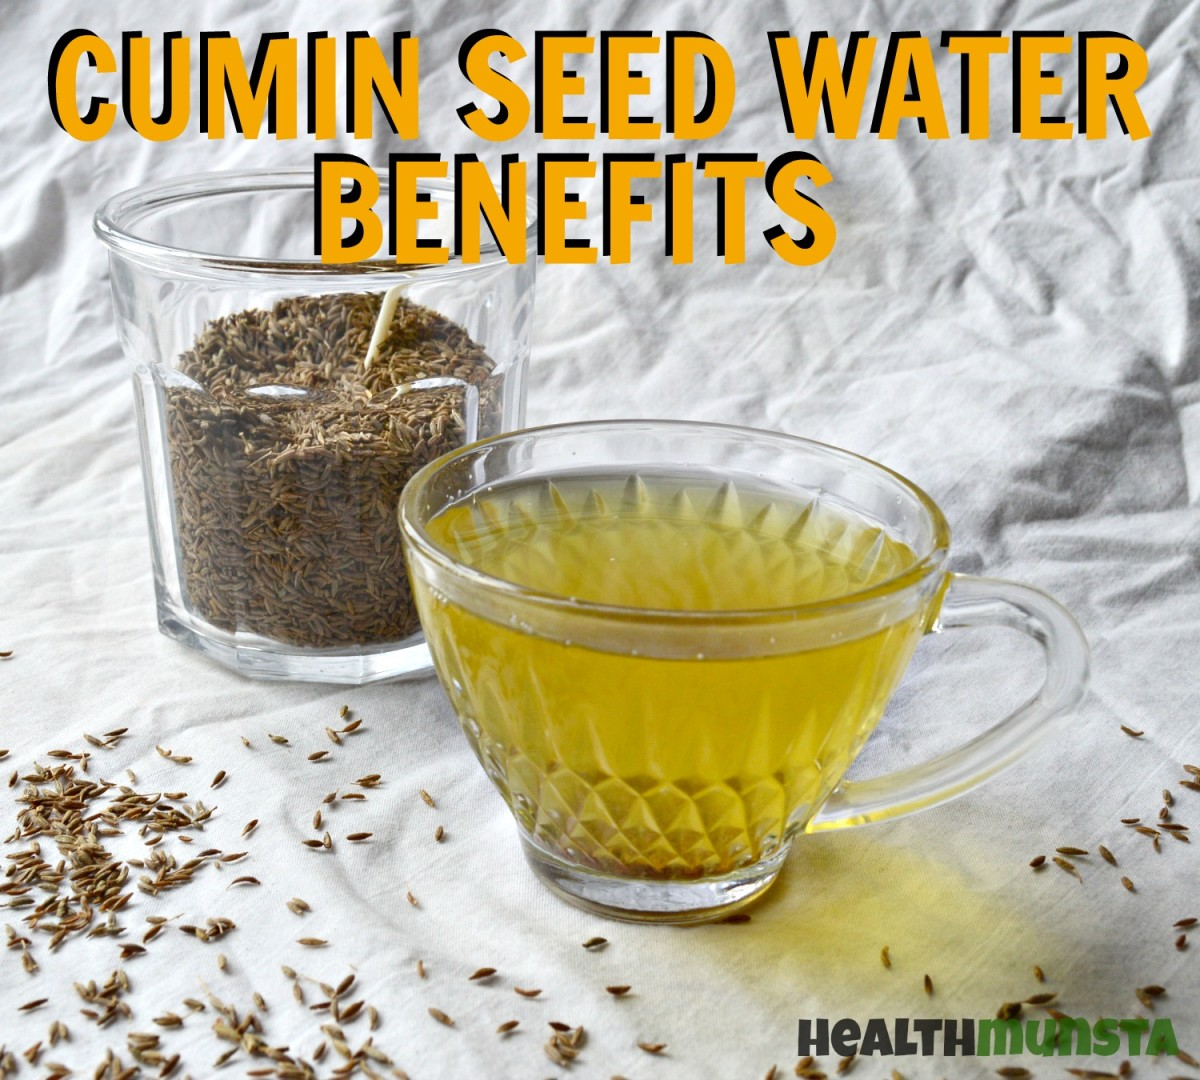 It's easy to make cumin seed water, and it should be consumed regularly because of its wonderful array of health benefits!